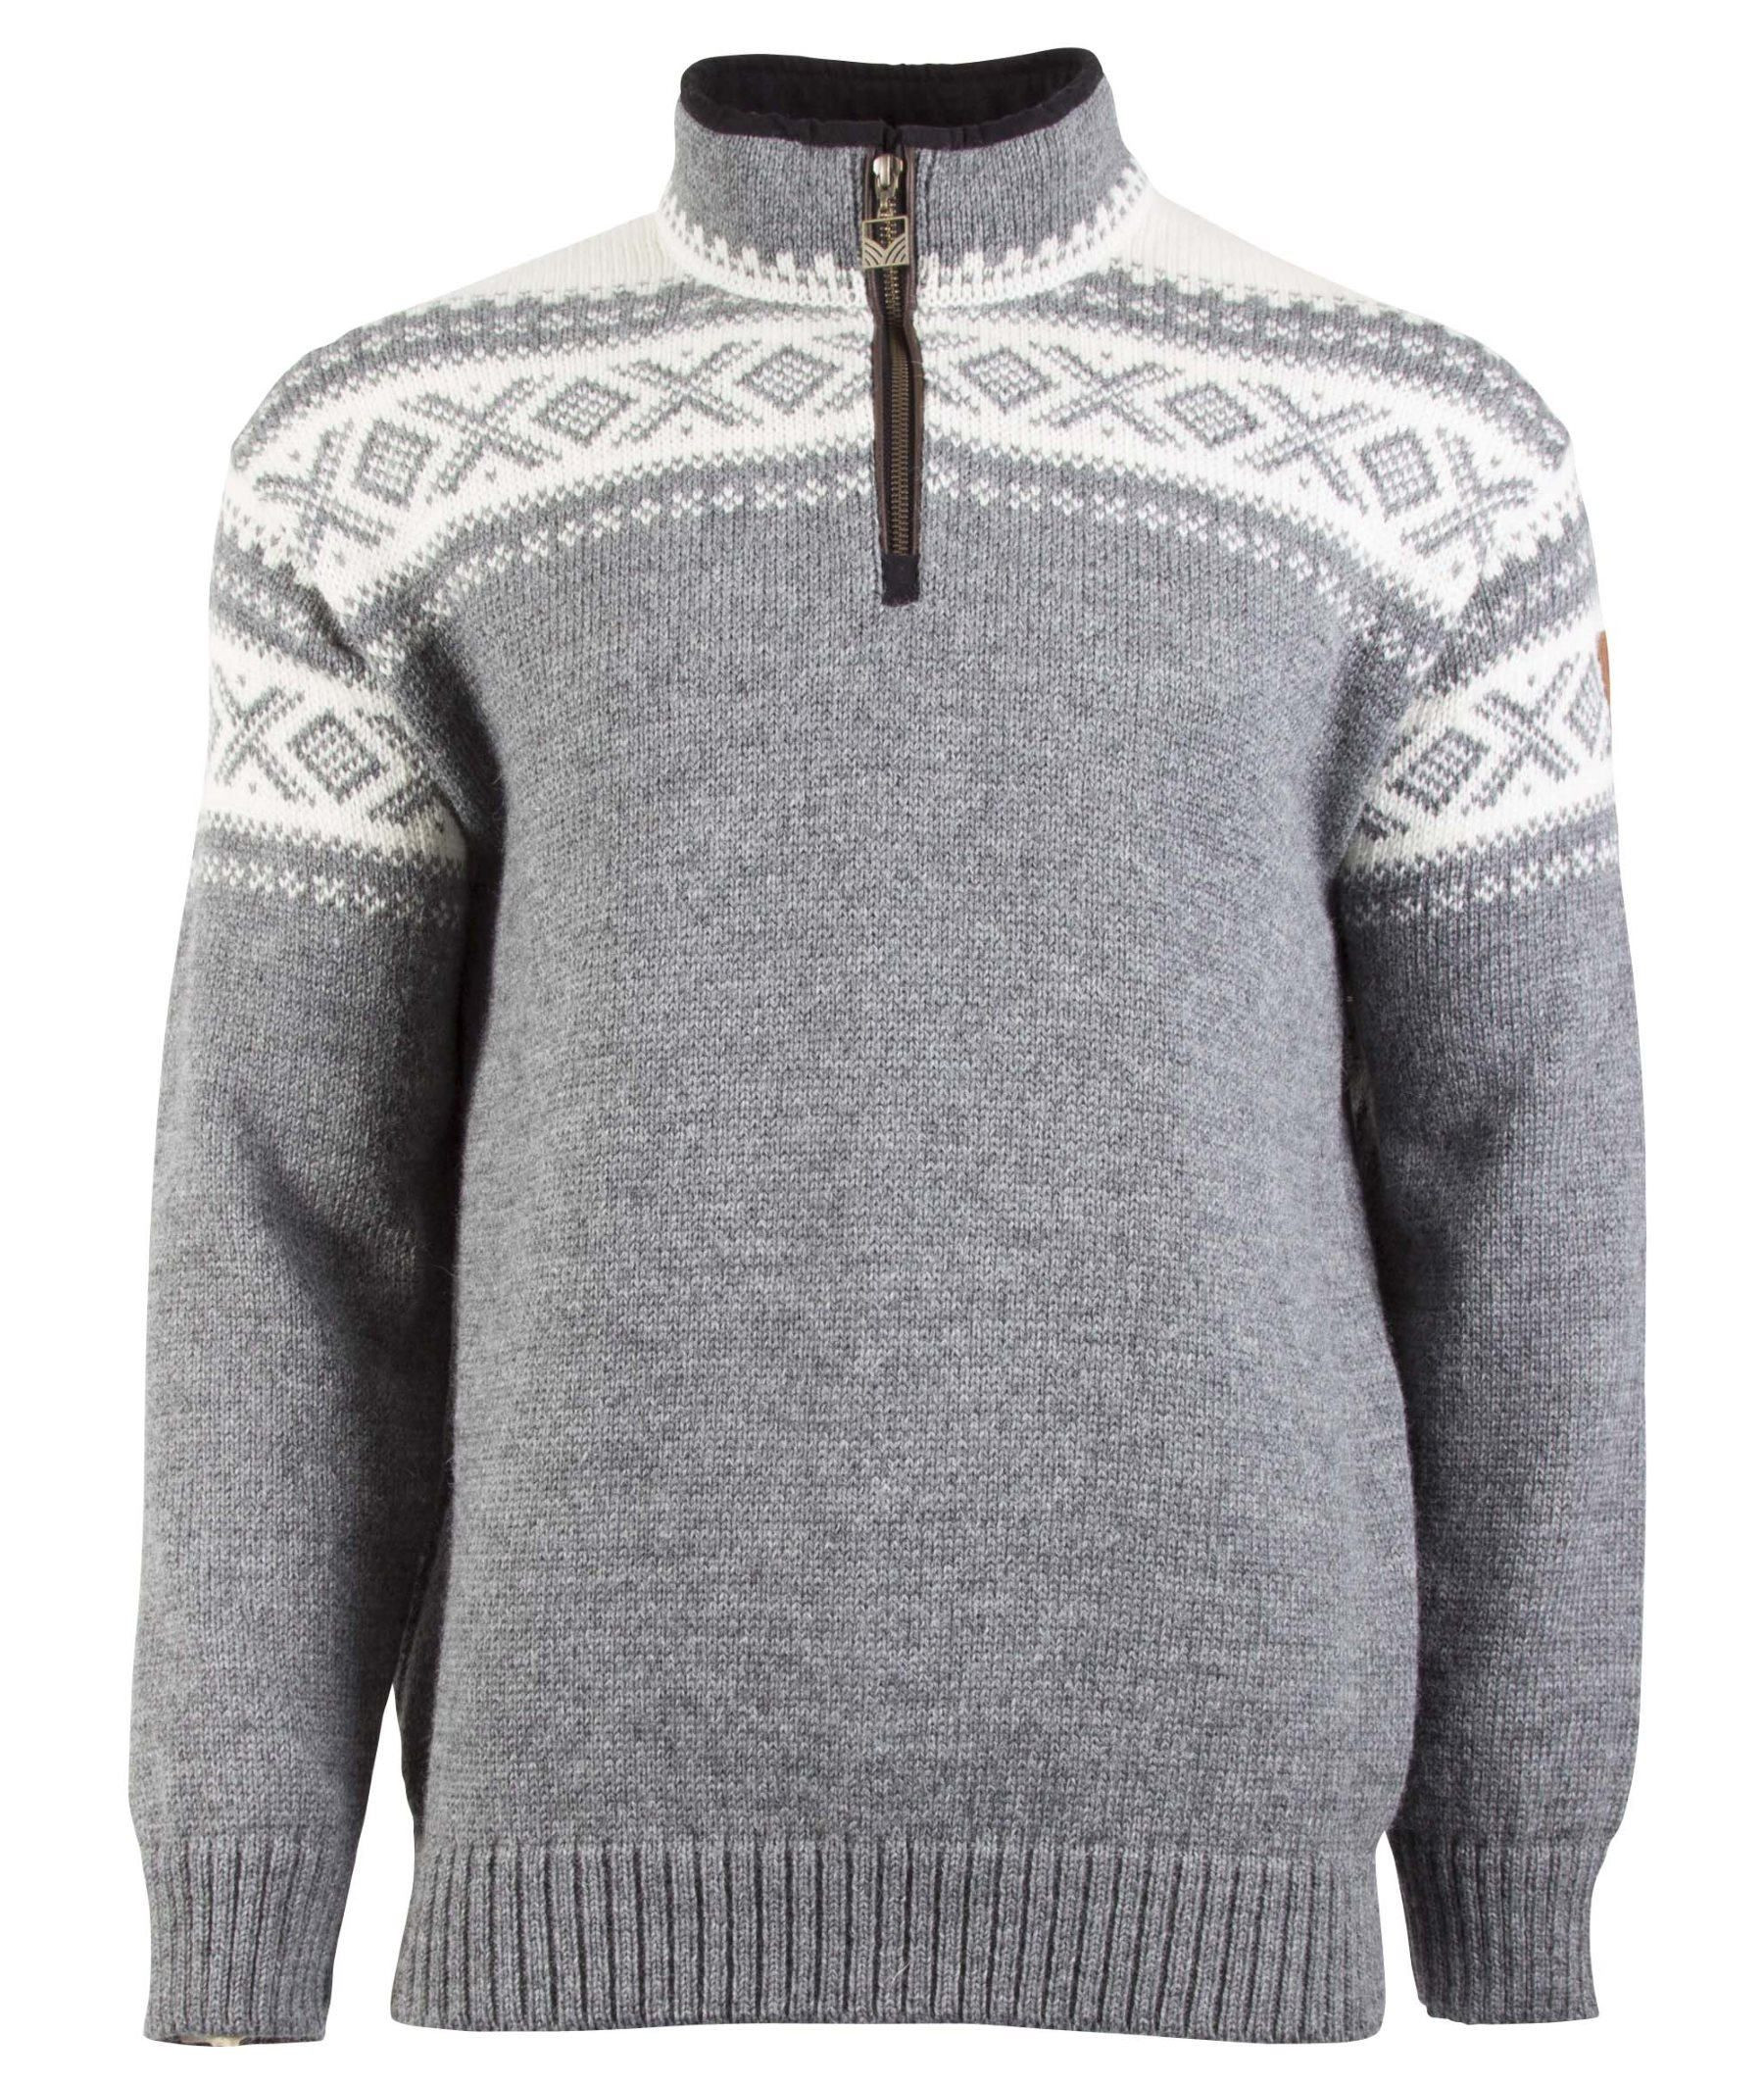 Cortina Half Zip Unisex Sweater Grau